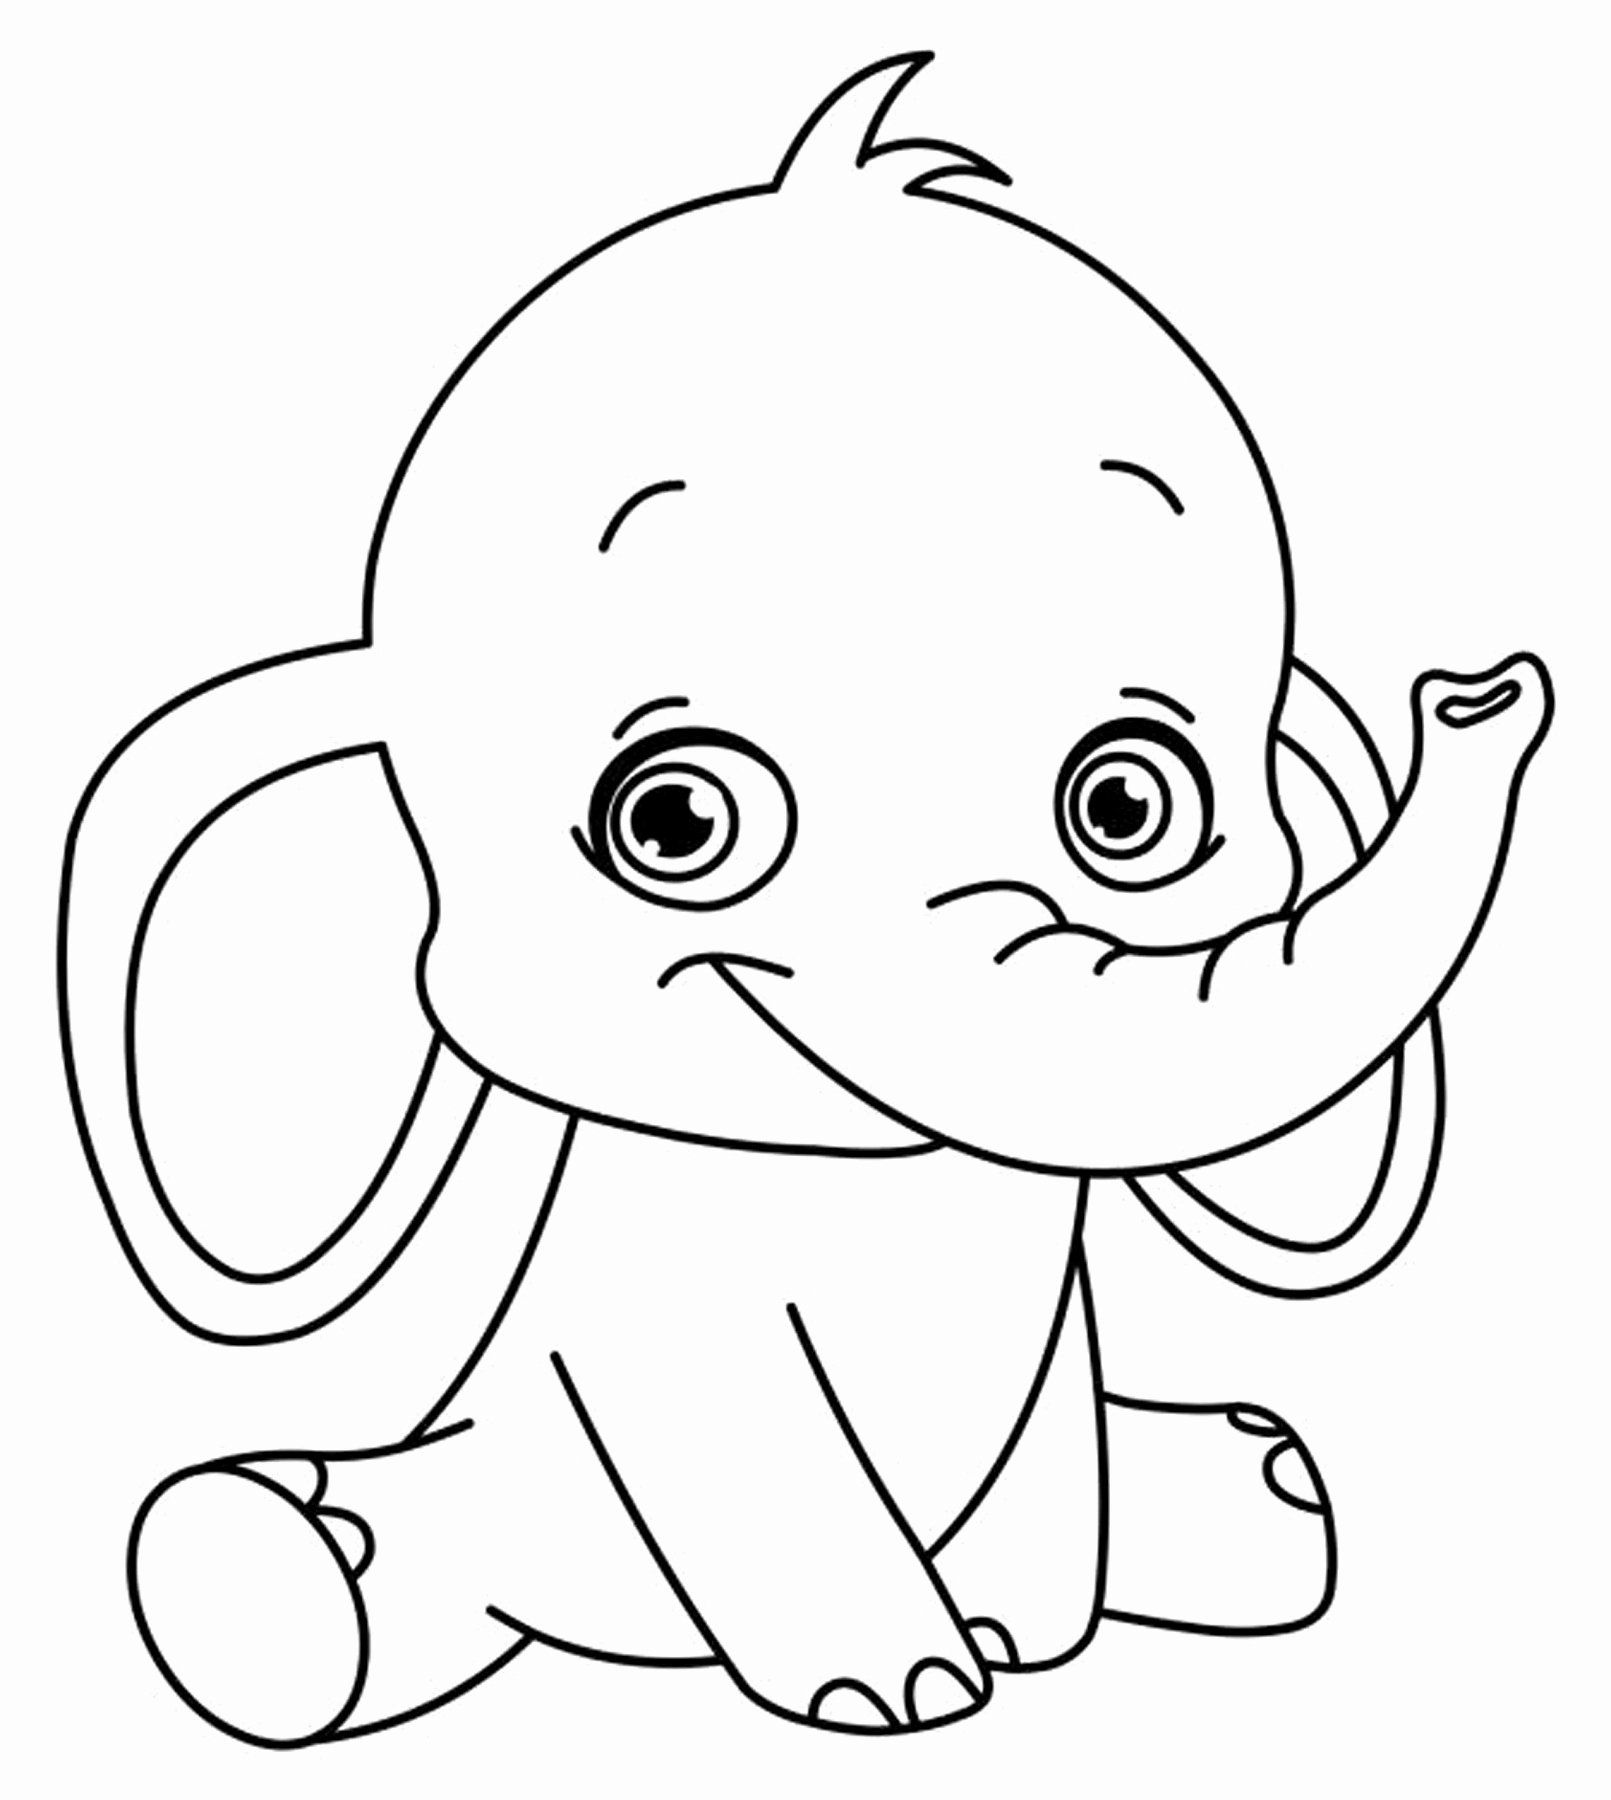 Childrens Coloring Books Unique Childrens Colouring Pages To Print Elephant Learning In 2020 Elephant Coloring Page Easy Coloring Pages Kids Printable Coloring Pages